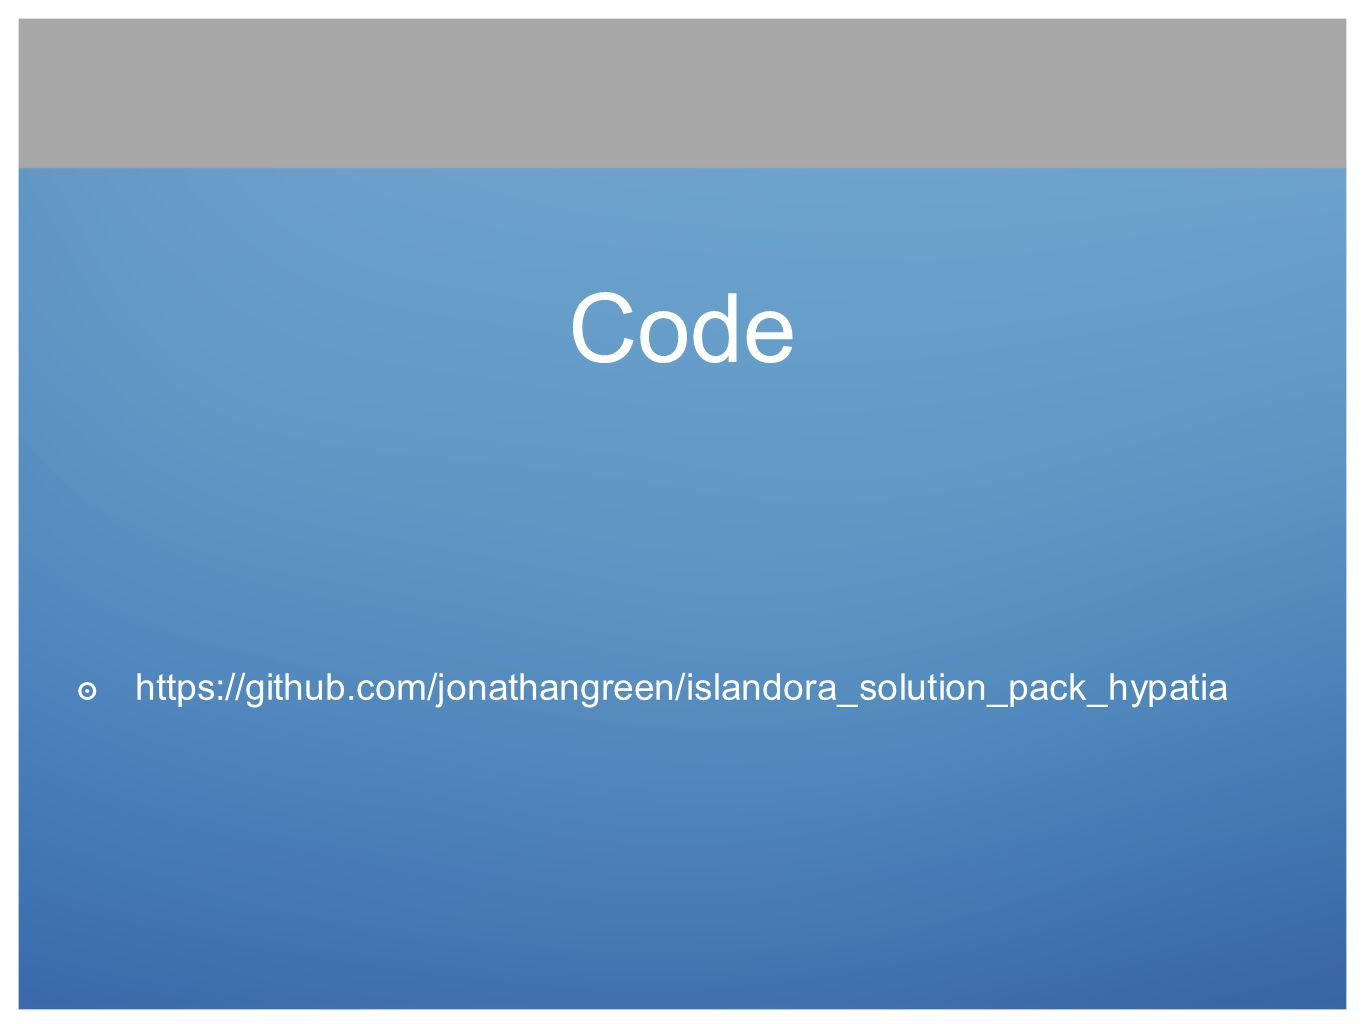 Code https://github.com/jonathangreen/islandora_solution_pack_hypatia